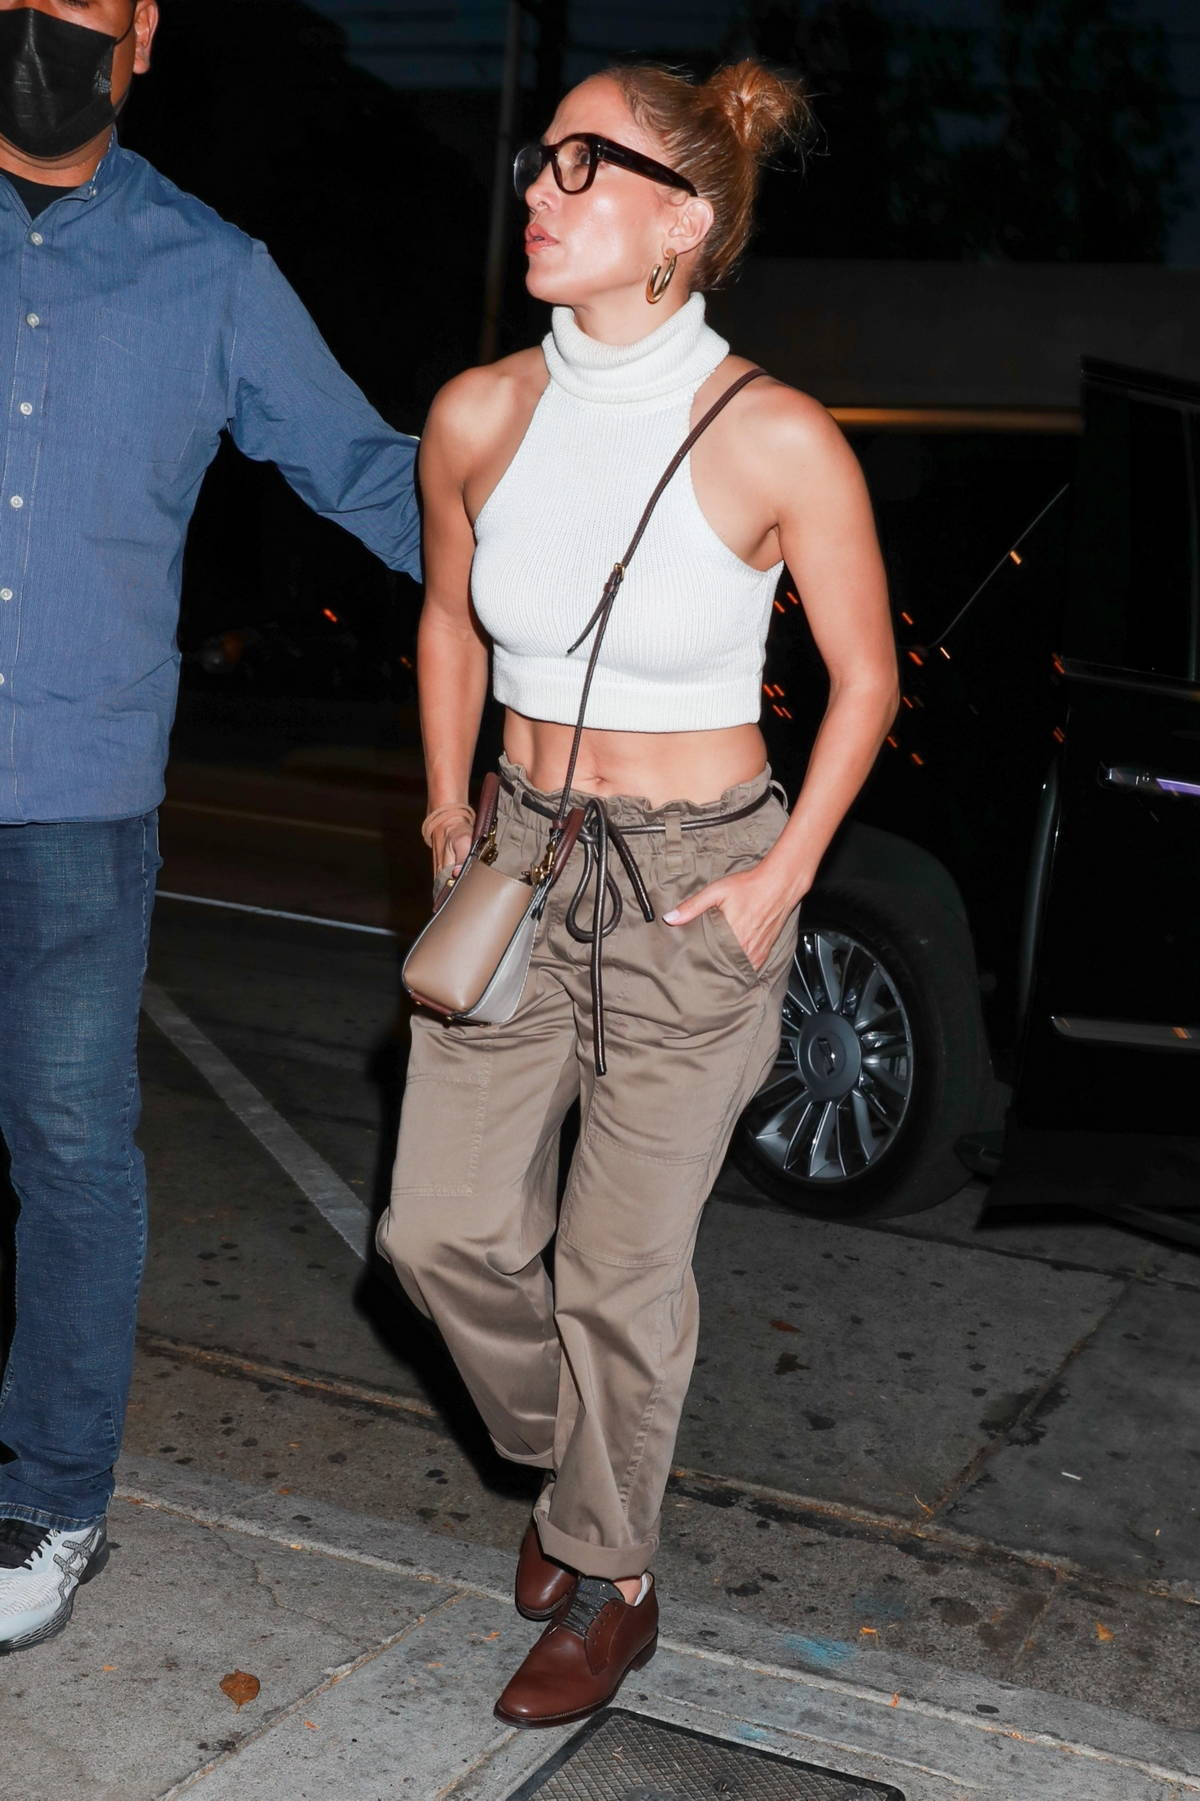 Jennifer Lopez arrives to celebrate her sister Lynda's birthday at Craig's in West Hollywood, California